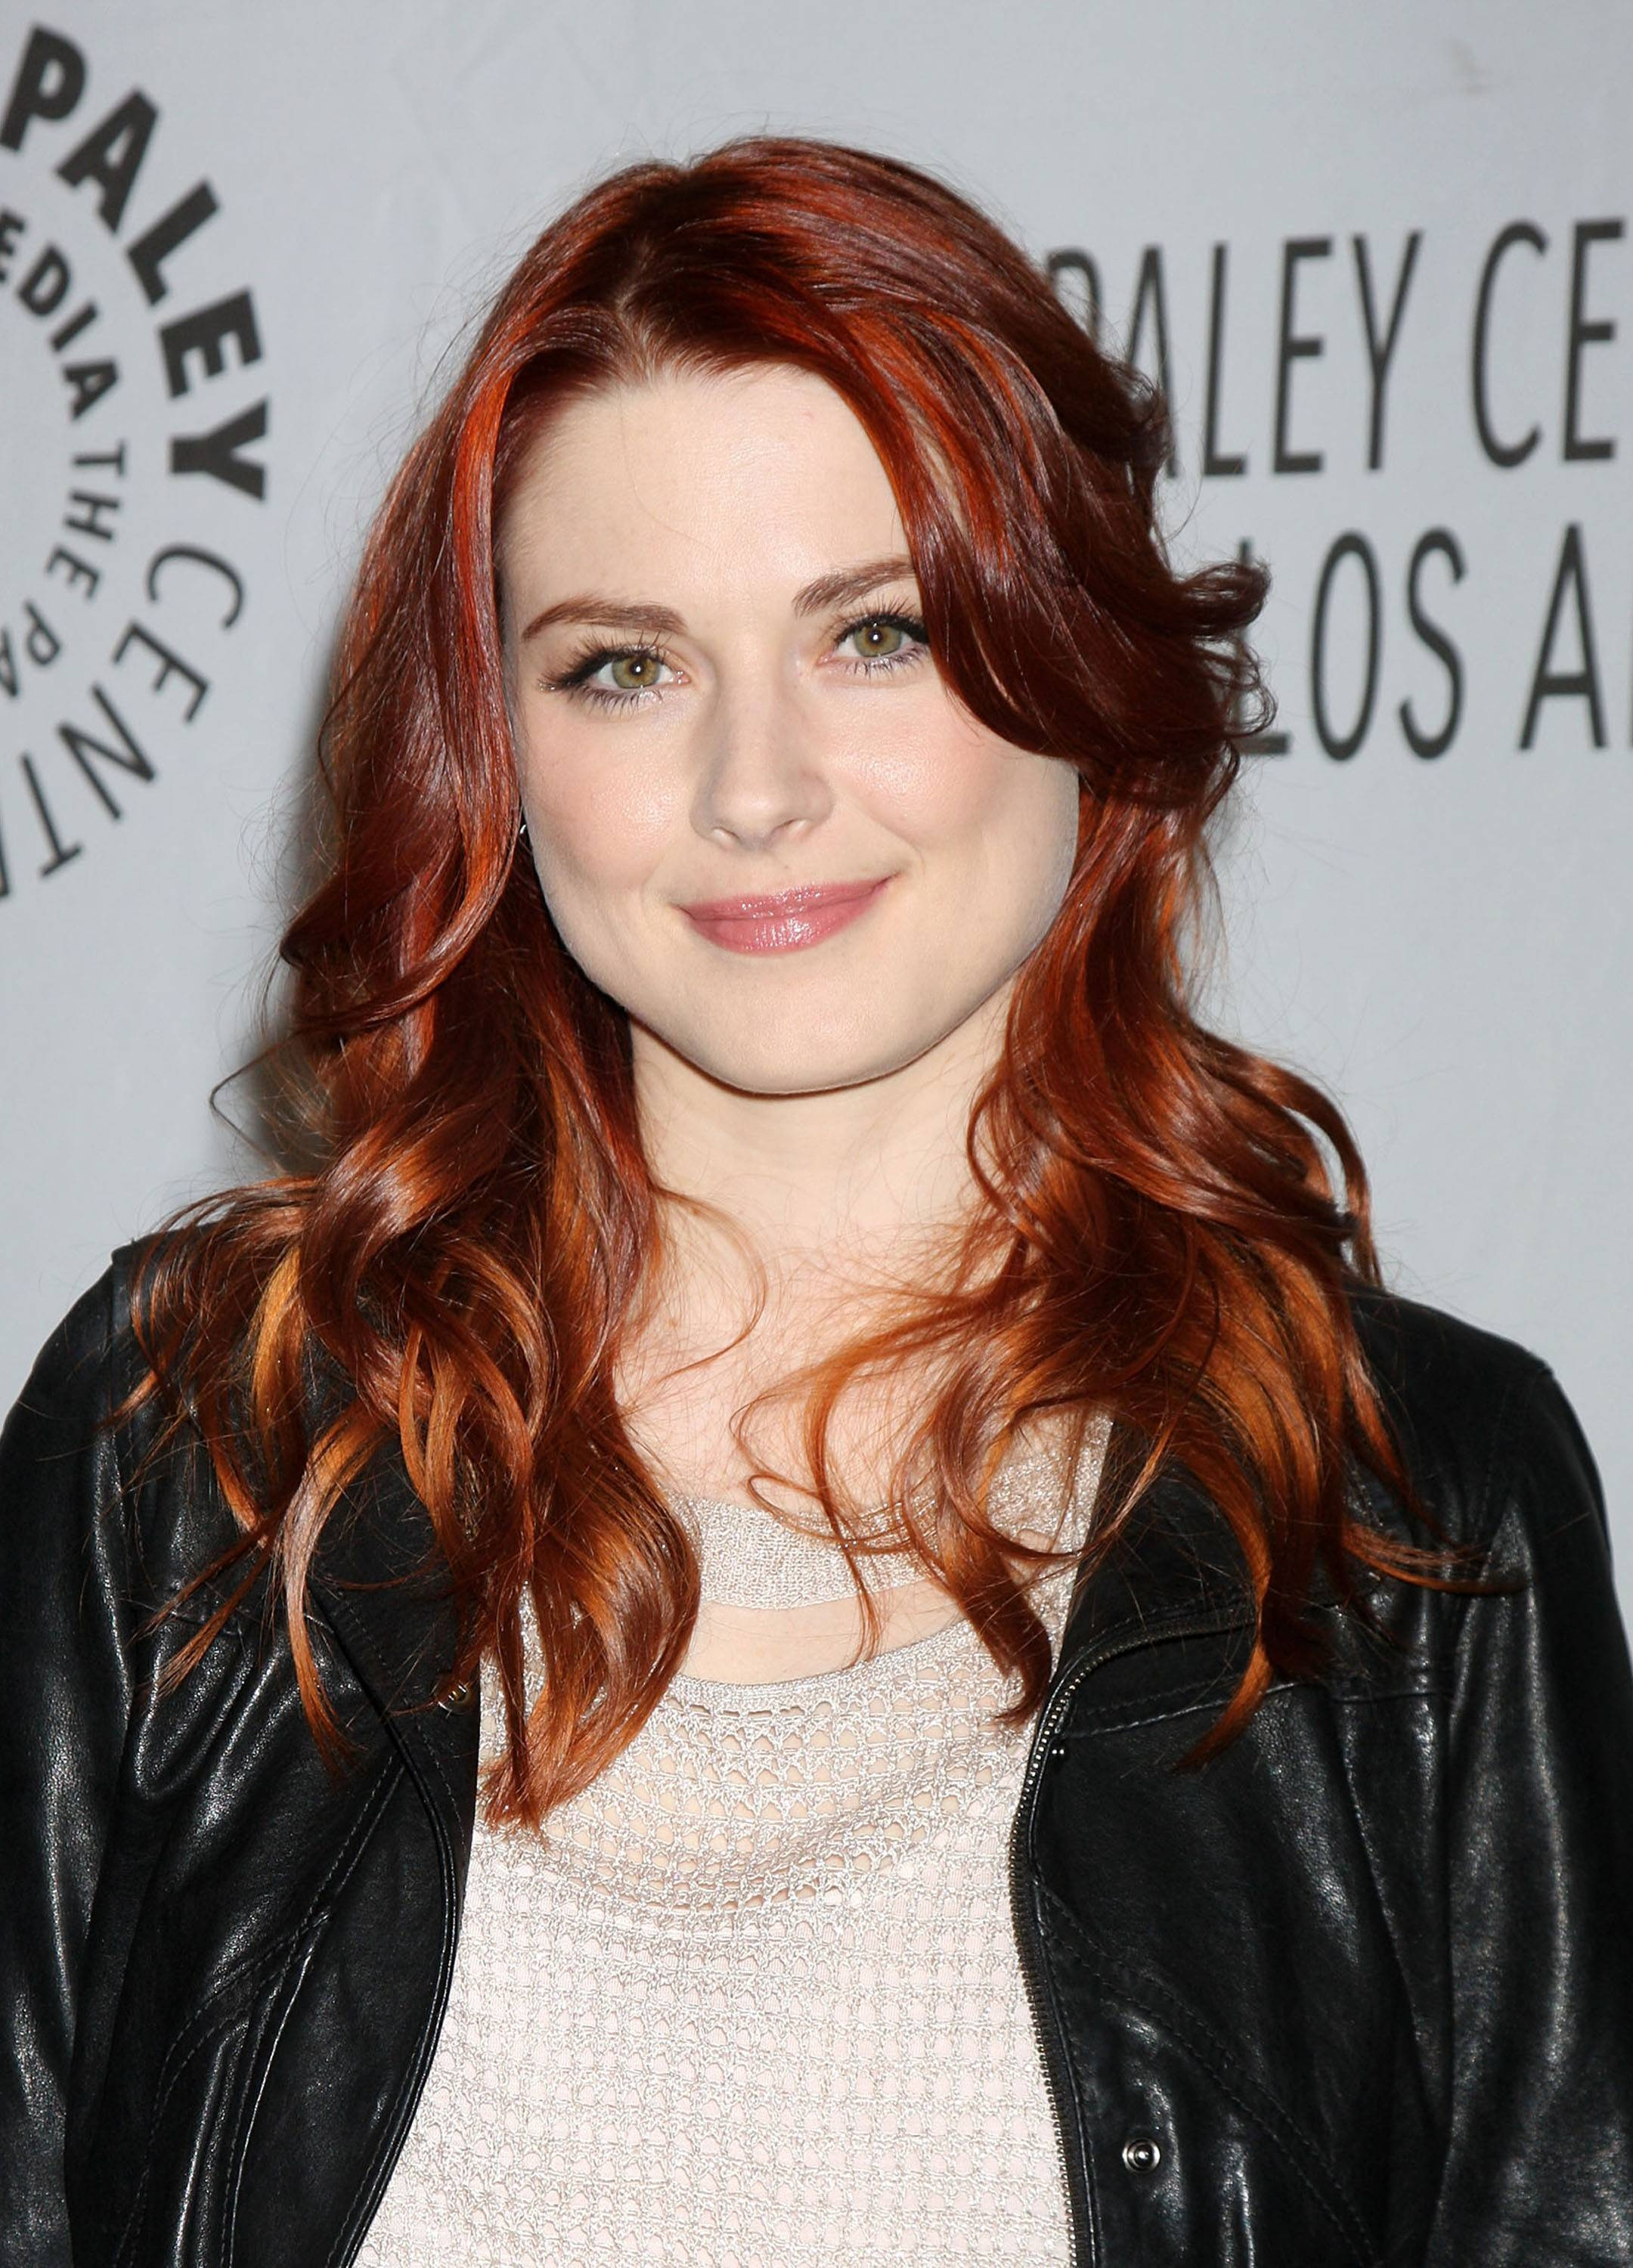 The 35-year old daughter of father (?) and mother(?), 171 cm tall Alexandra Breckenridge in 2018 photo